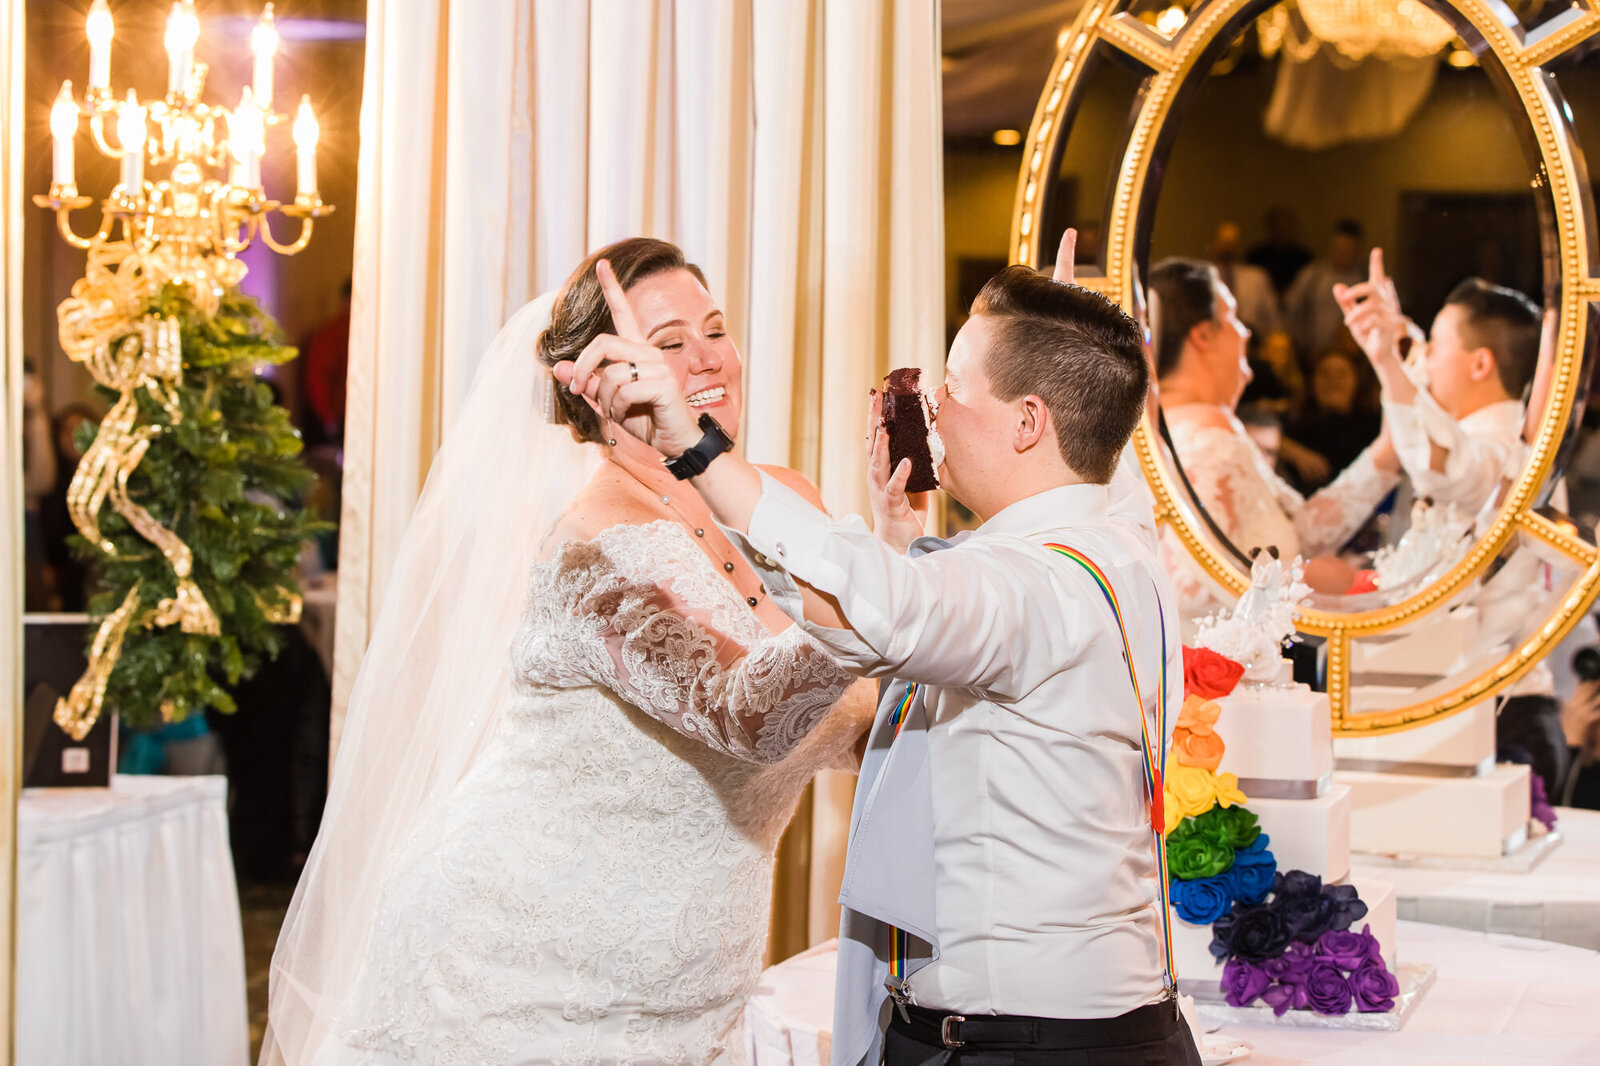 Bride smashing wedding cake into her wife's face at their STL LGBT wedding